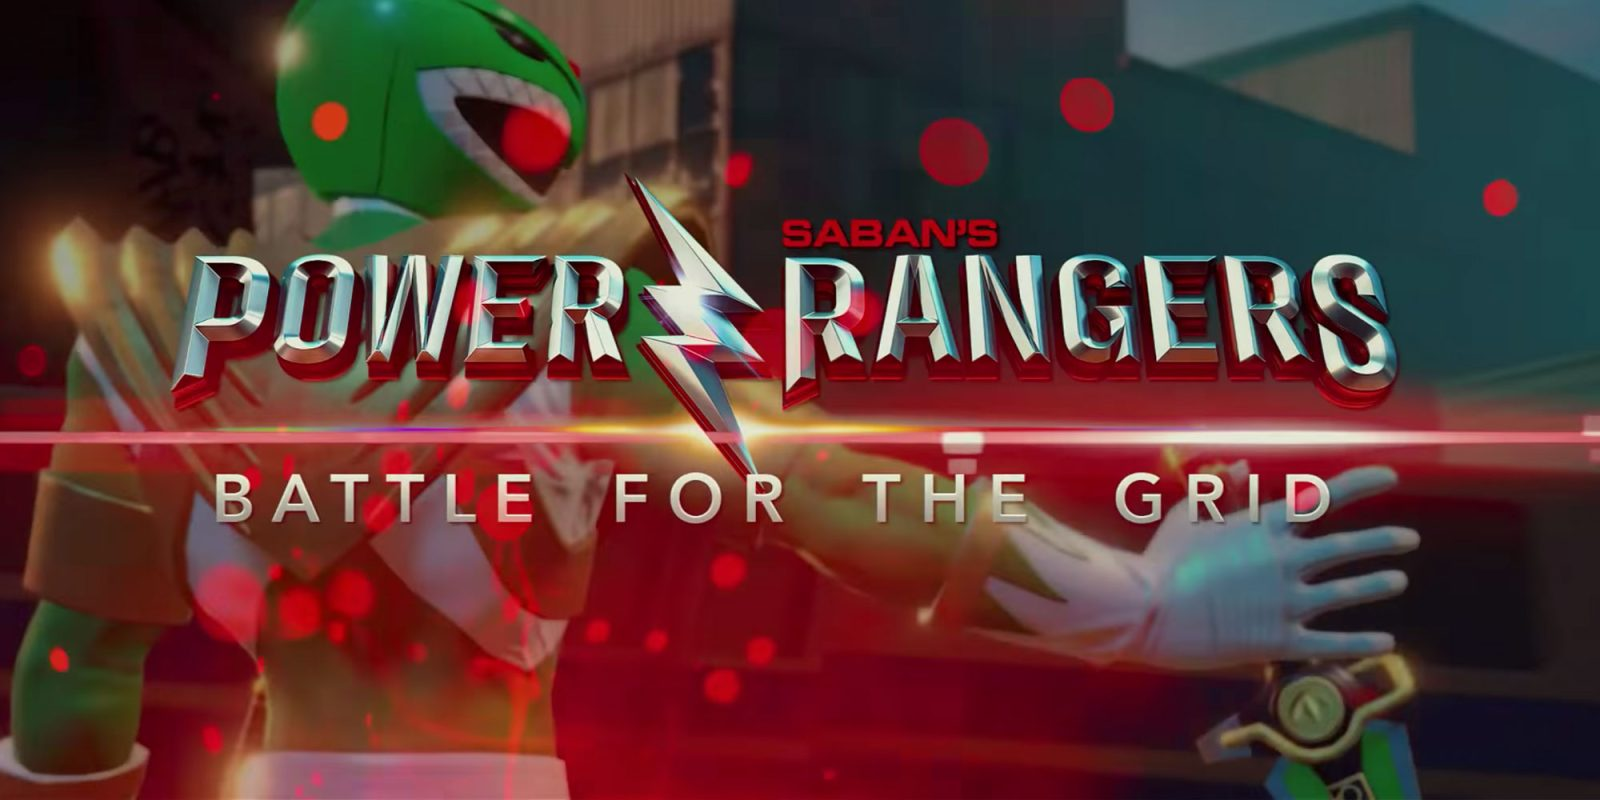 Power Rangers: Battle for the Grid Is Built From The Ground Up